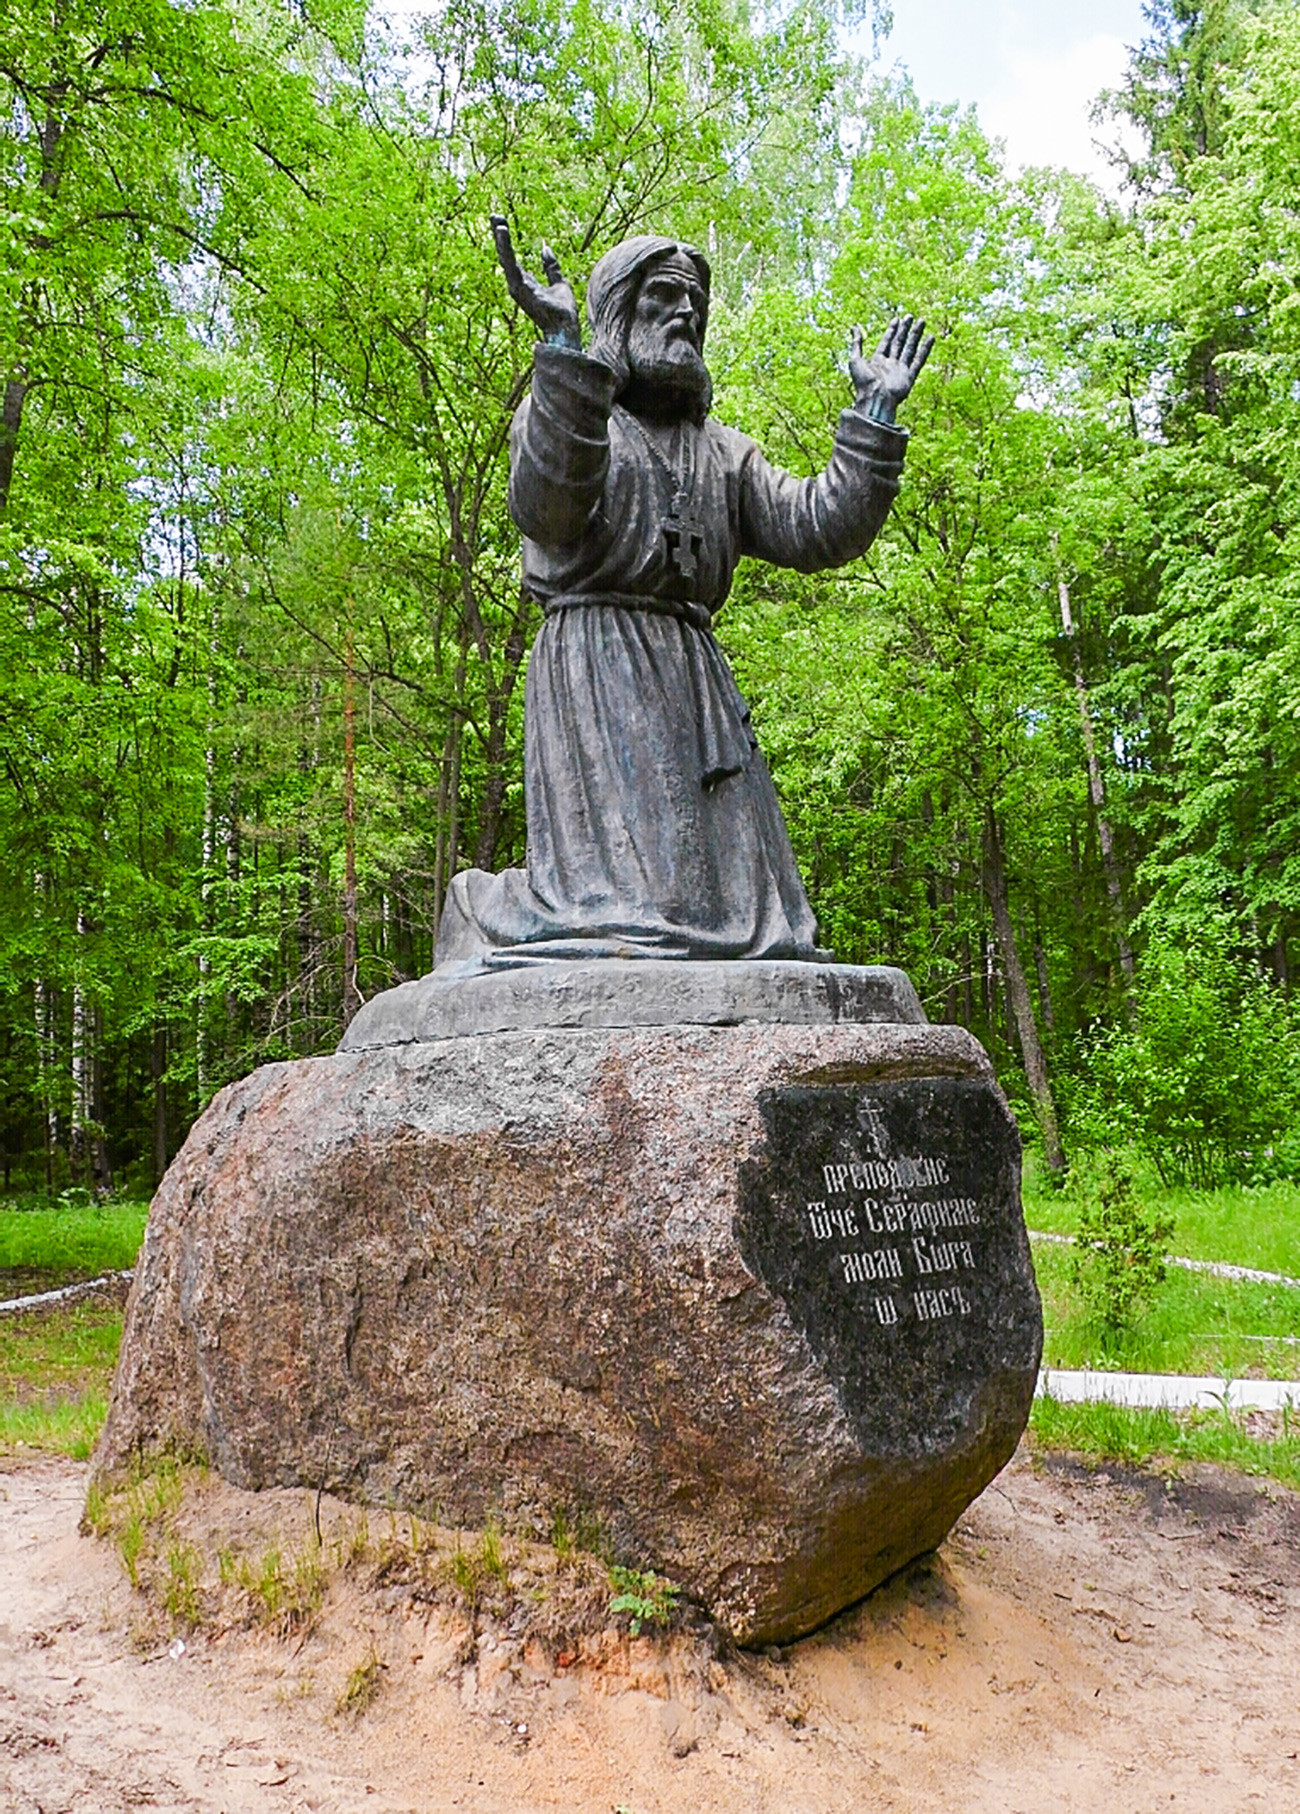 A monument to Saint Seraphim of Sarov standing on a stone